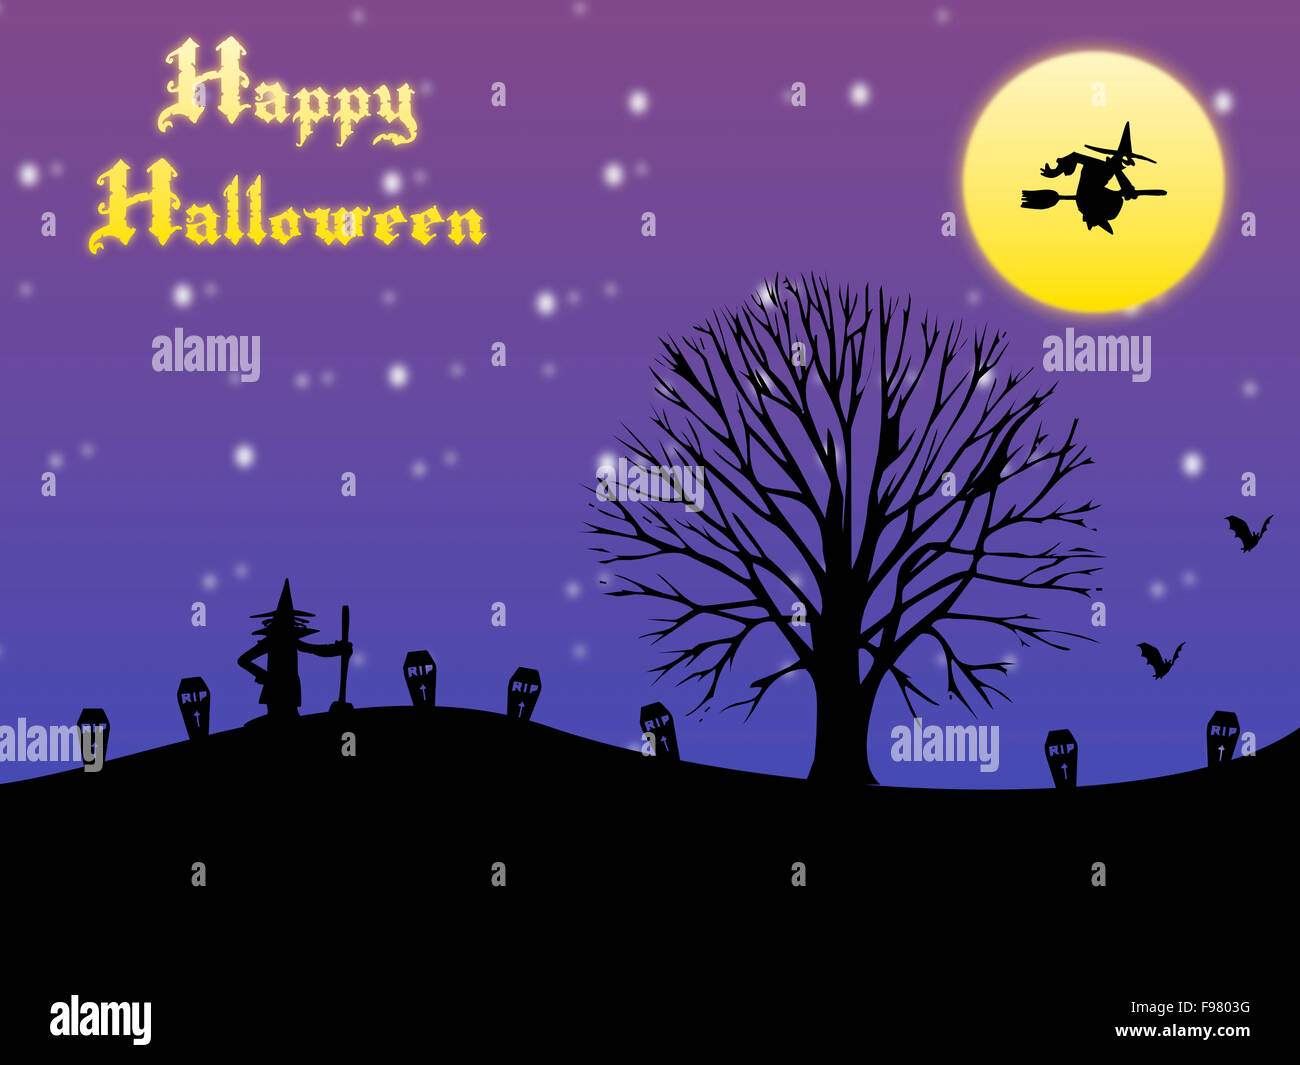 Happy Halloween Card With Moon And Bats , Witches And A Tree